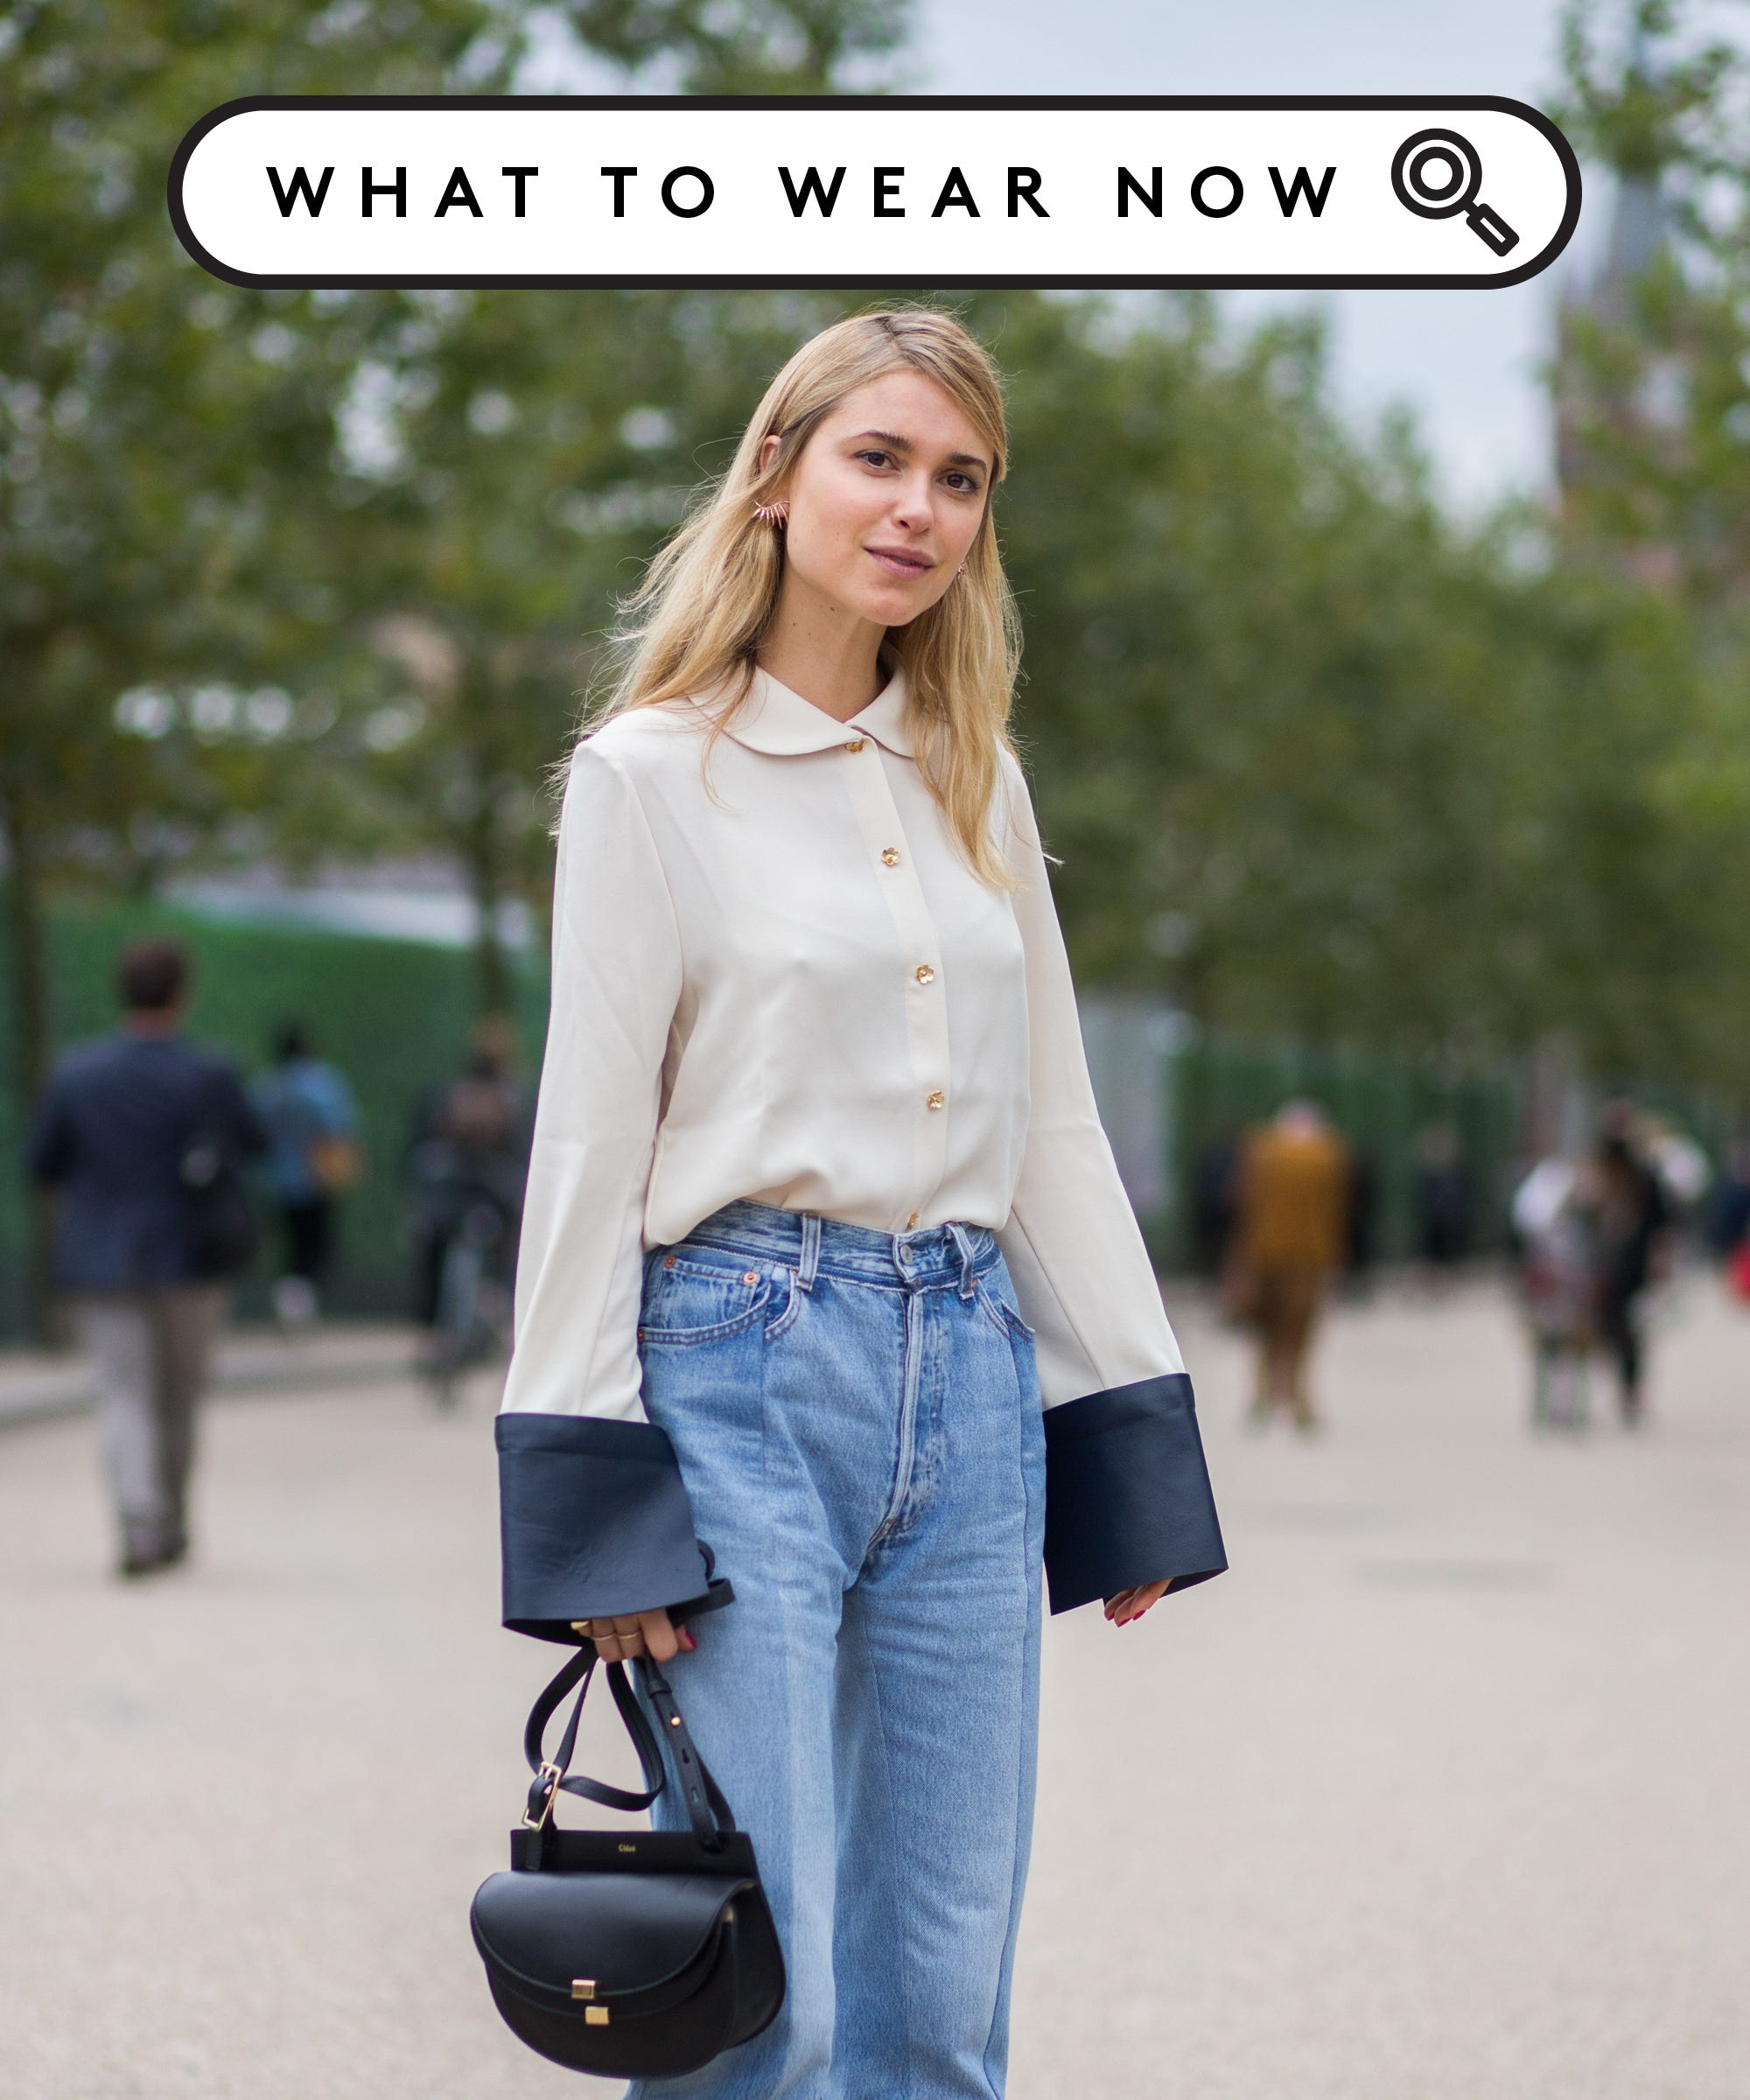 f73c32d07c5a2 Mom Jeans Outfits Going Out Looks